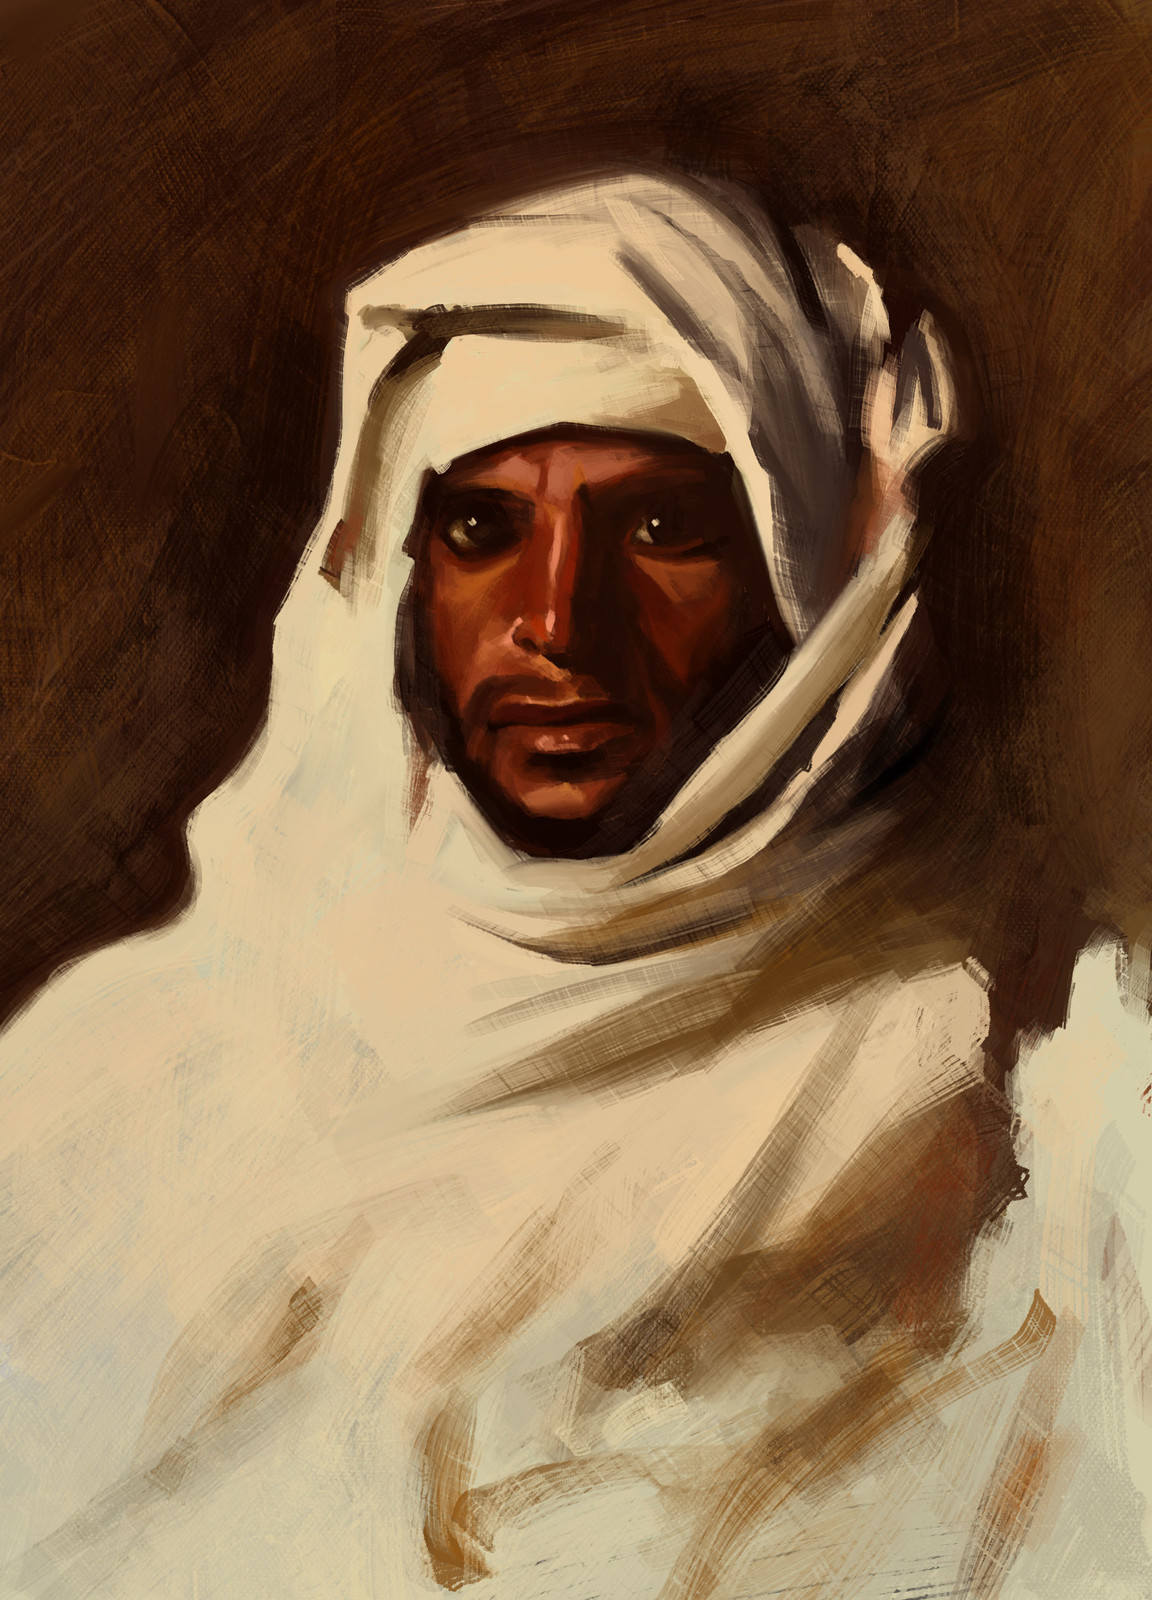 A Bedouin Arab by John Singer Sargent (1856-1925)